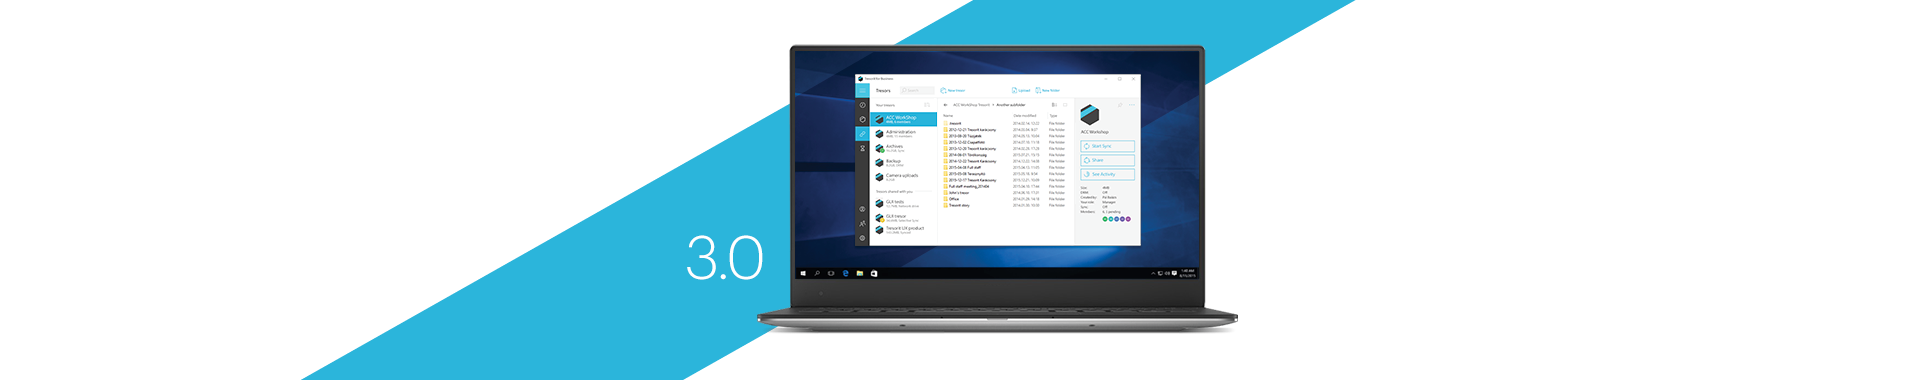 Tresorit 3.0 available for Windows